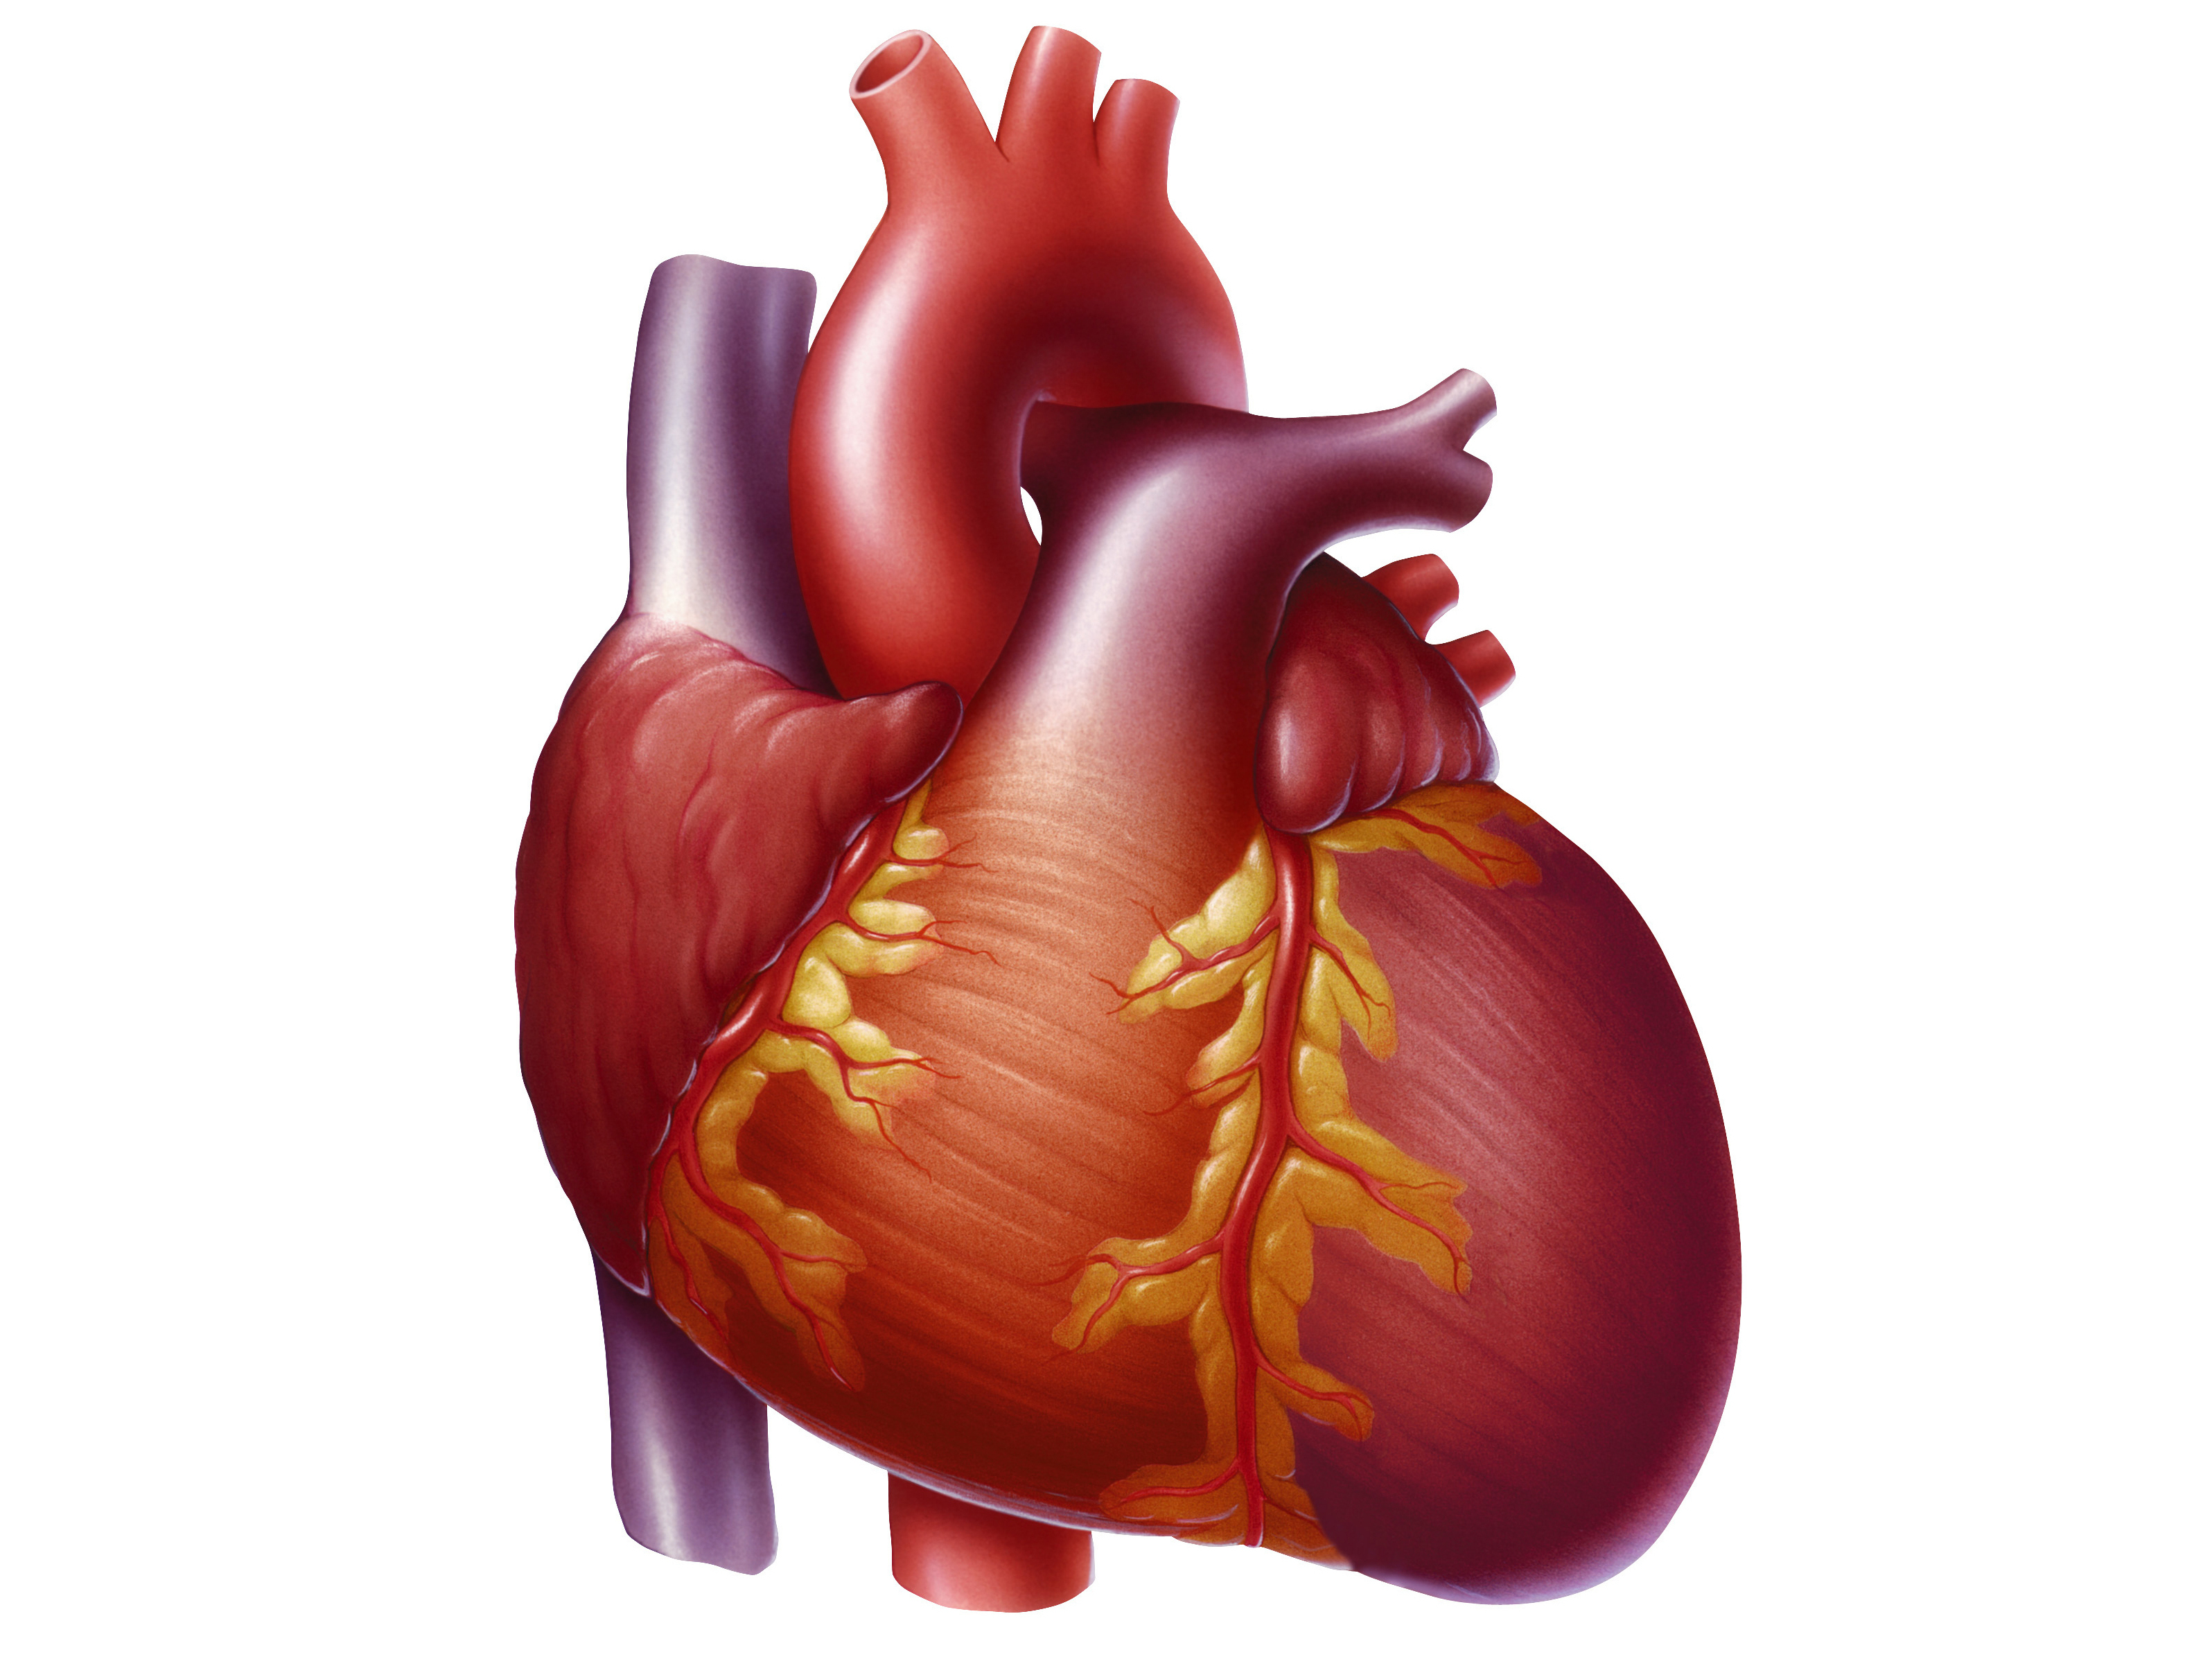 Heart disease | Norway| PDF | PPT| Case Reports | Symptoms | Treatment